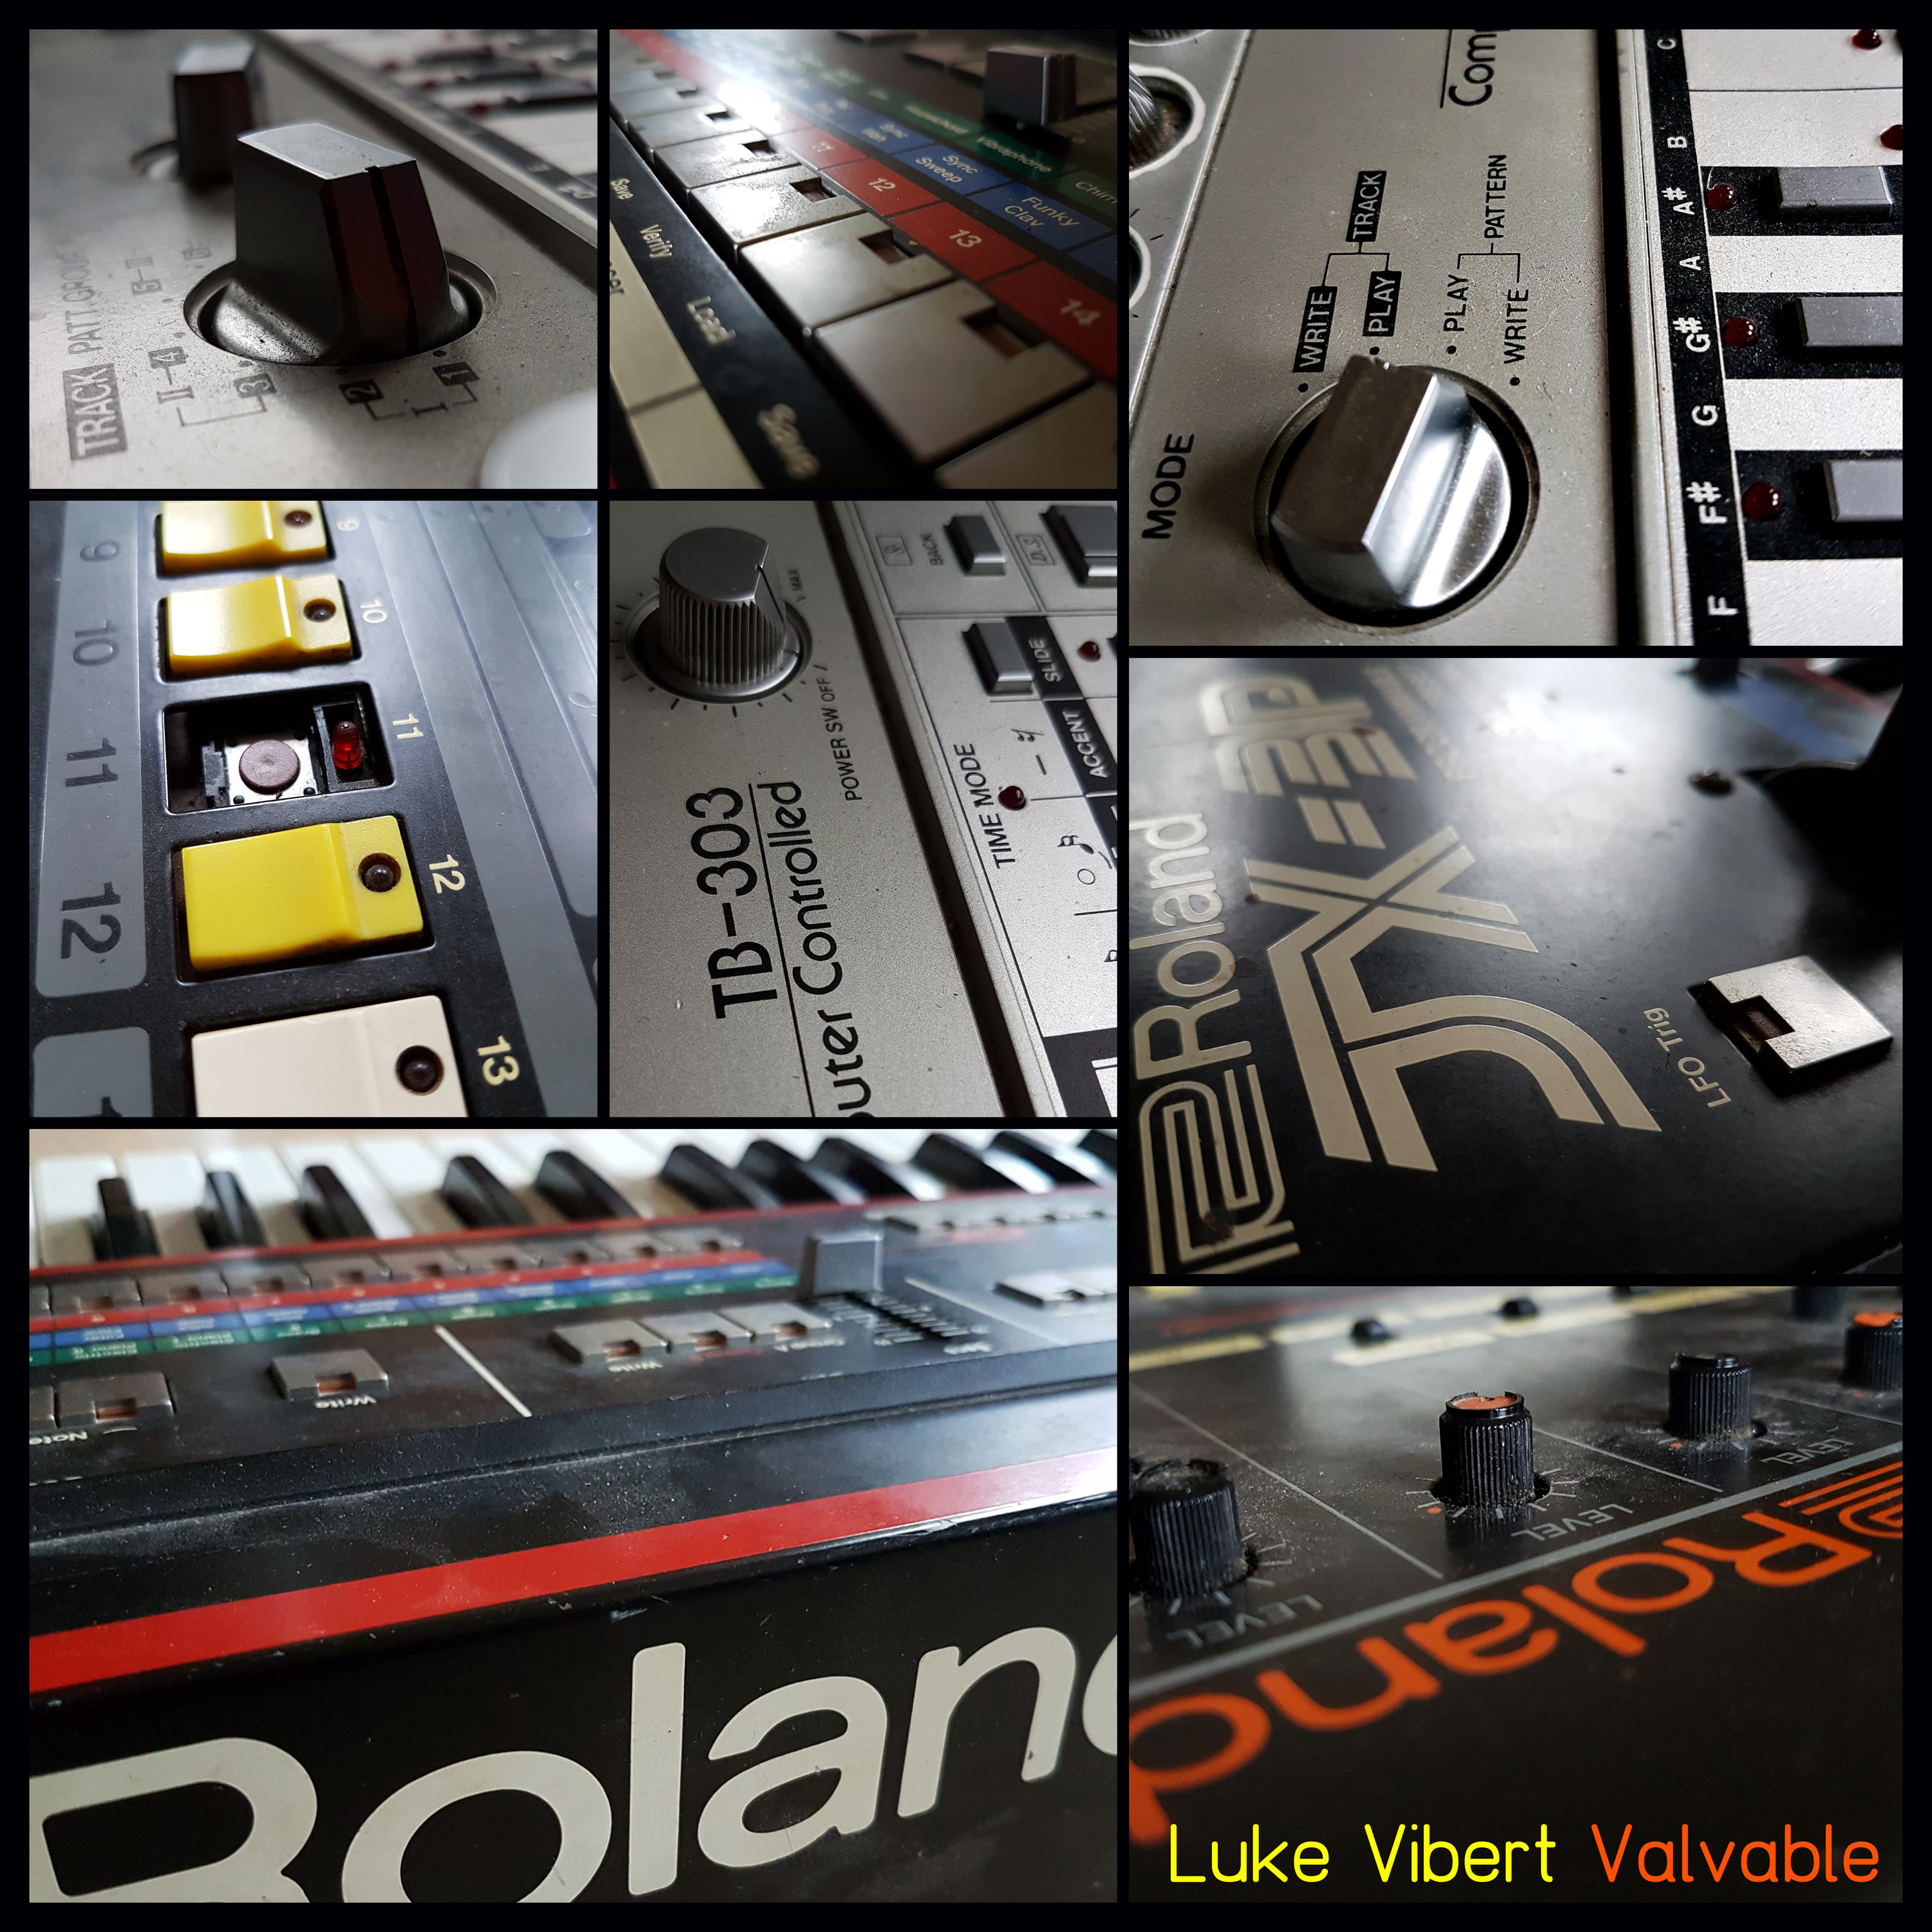 Luke Vibert/VALVABLE DLP